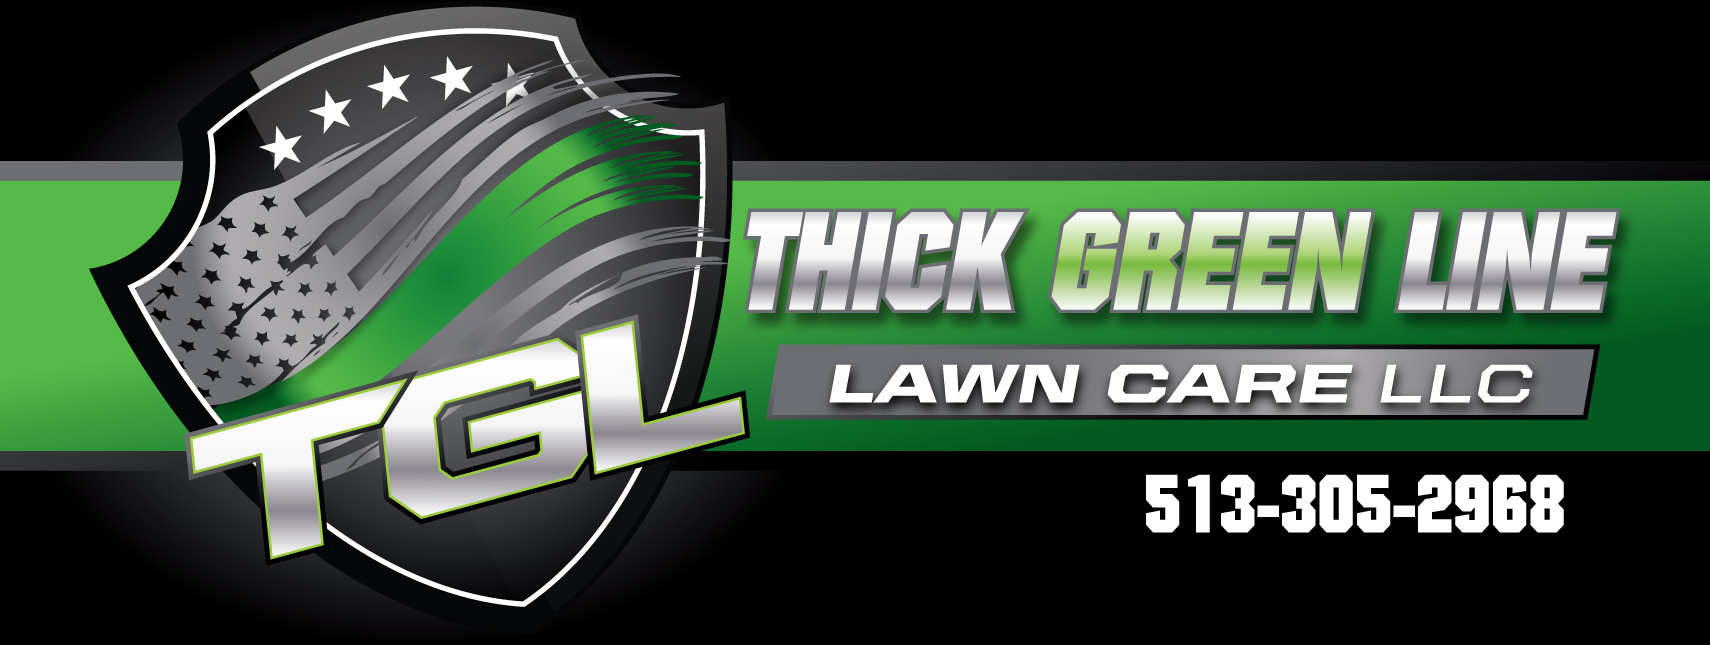 Thick green line   social media cover photo fb